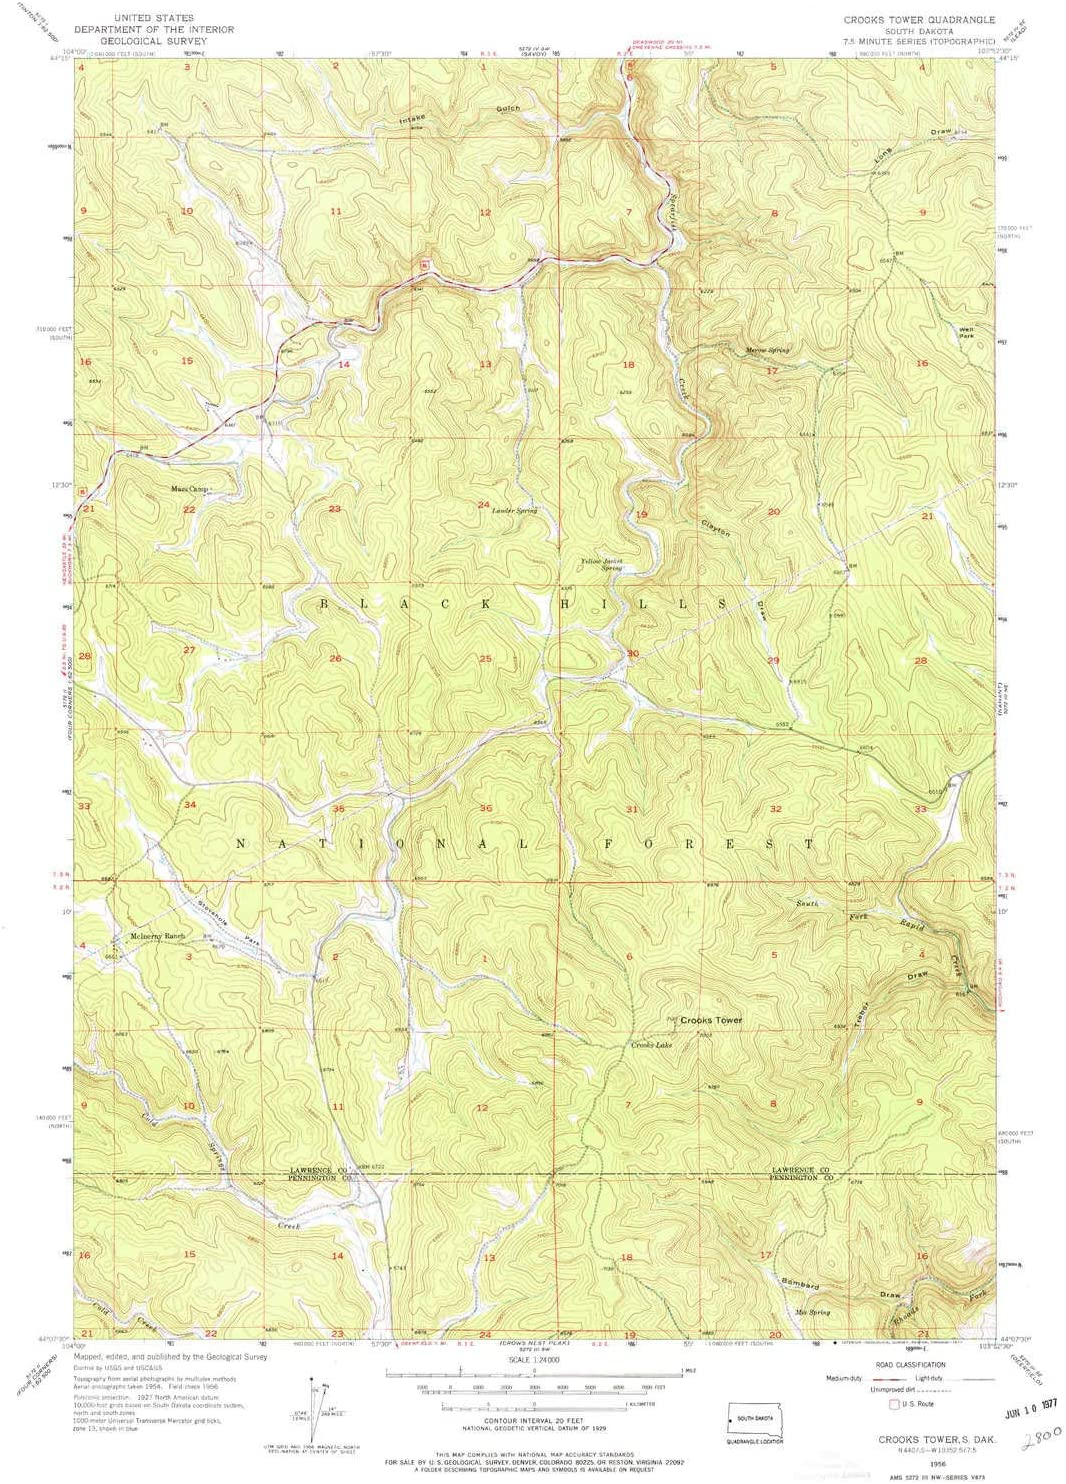 YellowMaps Crooks Tower SD topo map Sale price Scale 1:24000 Mi X 7.5 Challenge the lowest price of Japan ☆